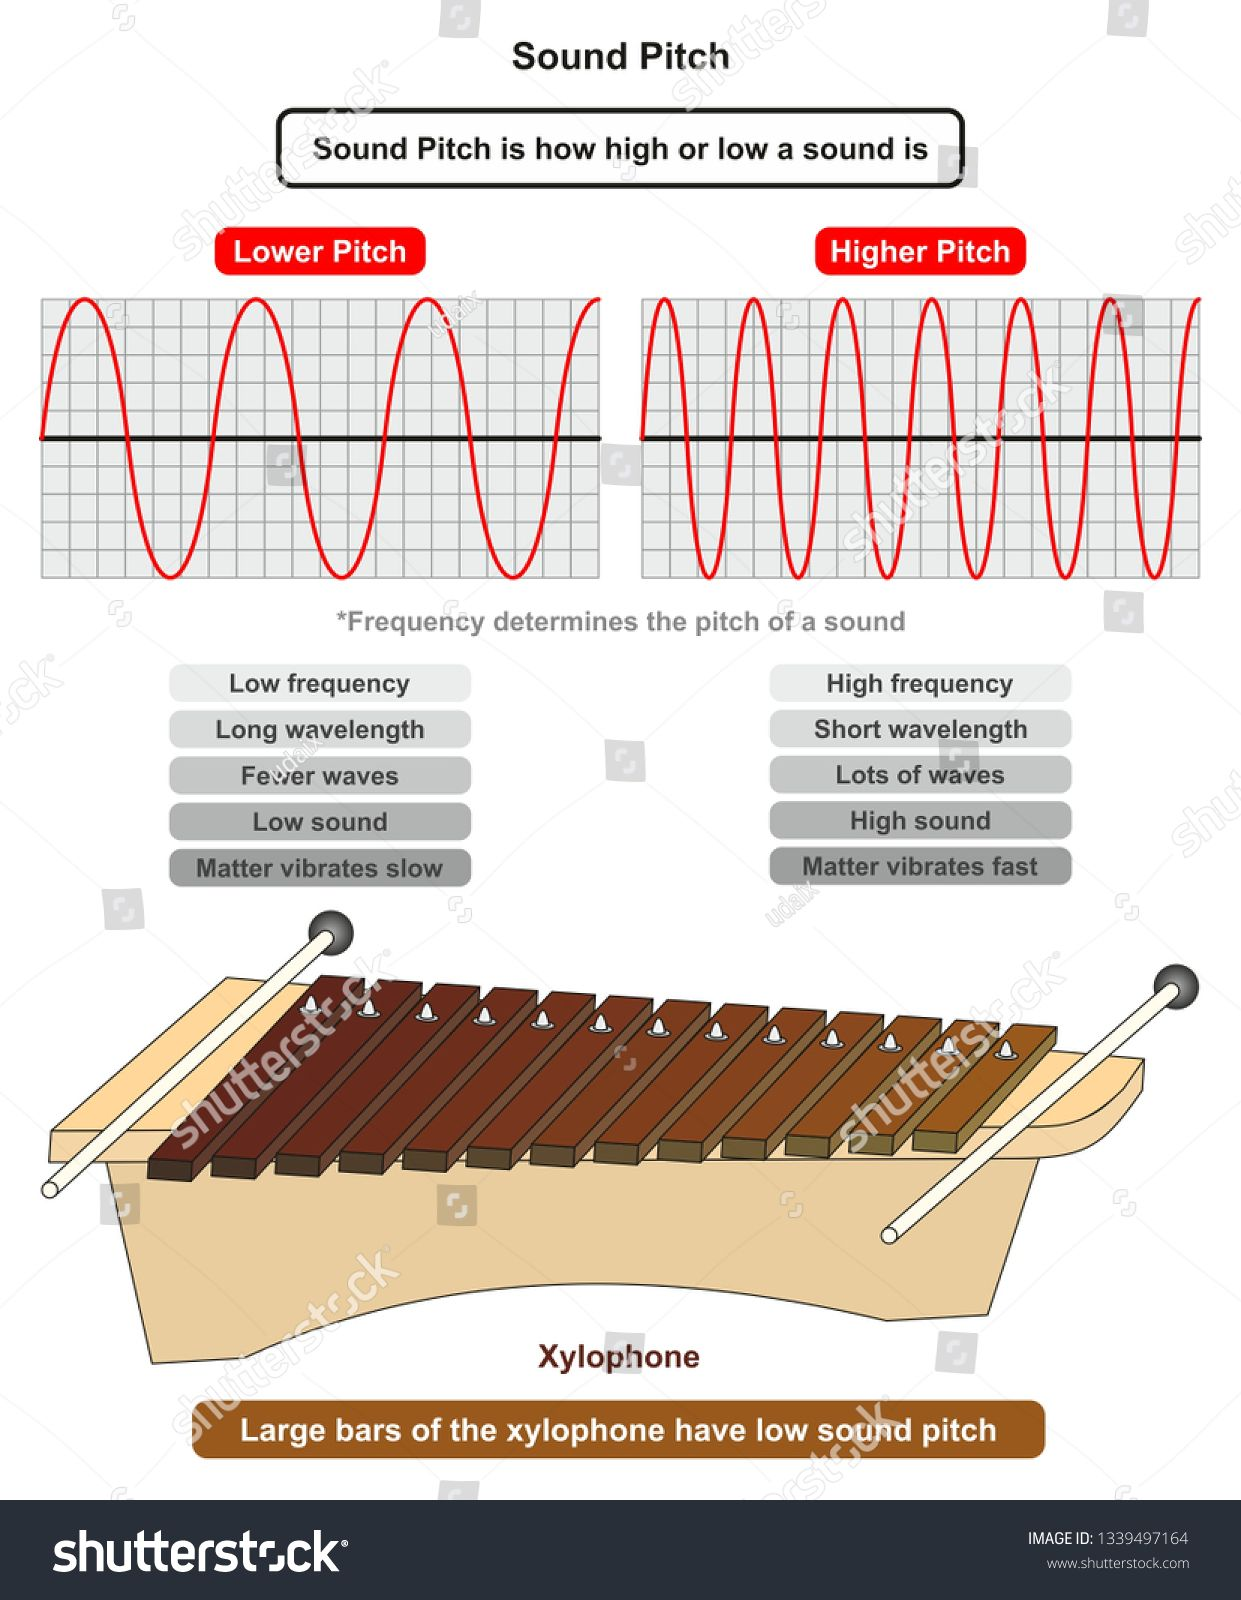 Sound Pitch Infographic Diagram Showing Comparison Of High And Low Frequency Sound Waves Also Example Of Xylophone Where La In 2020 Sound Frequencies Infographic Sound